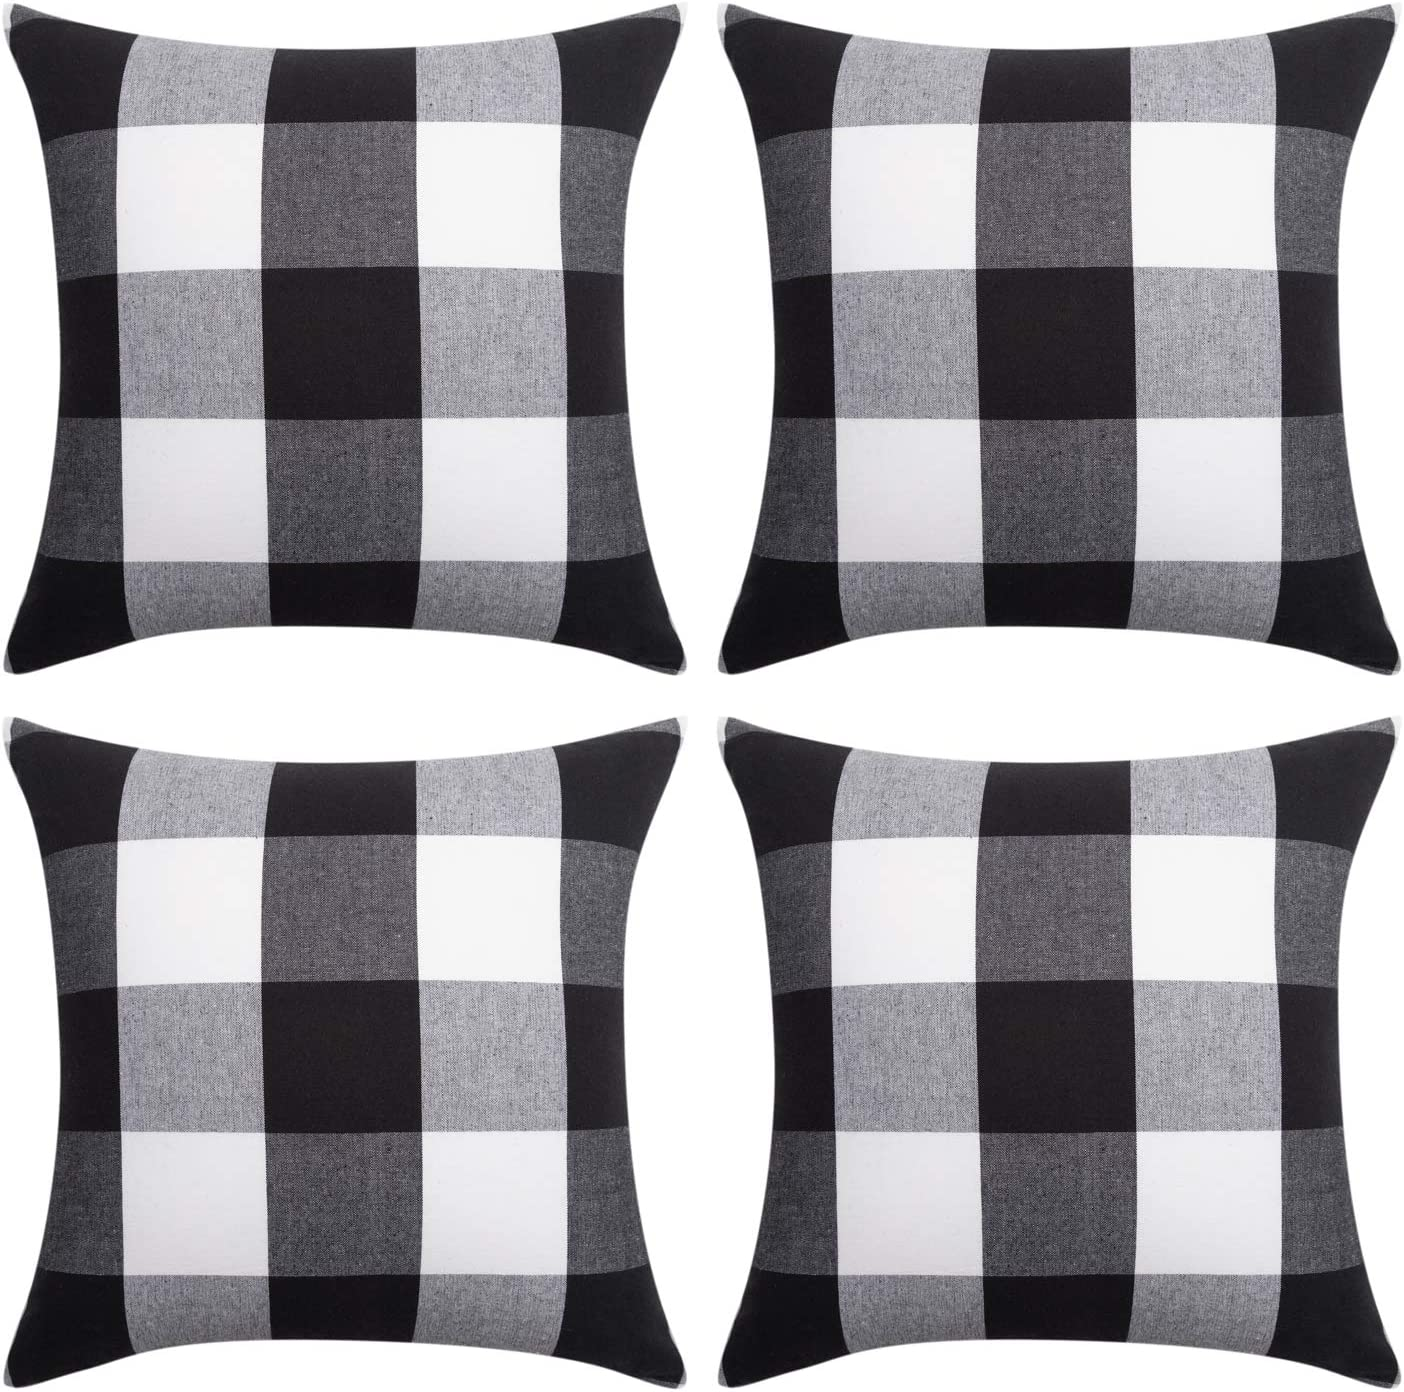 NEOVIVA Decorative Pillow Covers for 18 x 18 Inches Throw Pillow Insert, Set of 4 Buffalo Check Plaid Cotton Farmhouse Cushion Covers, Black and White